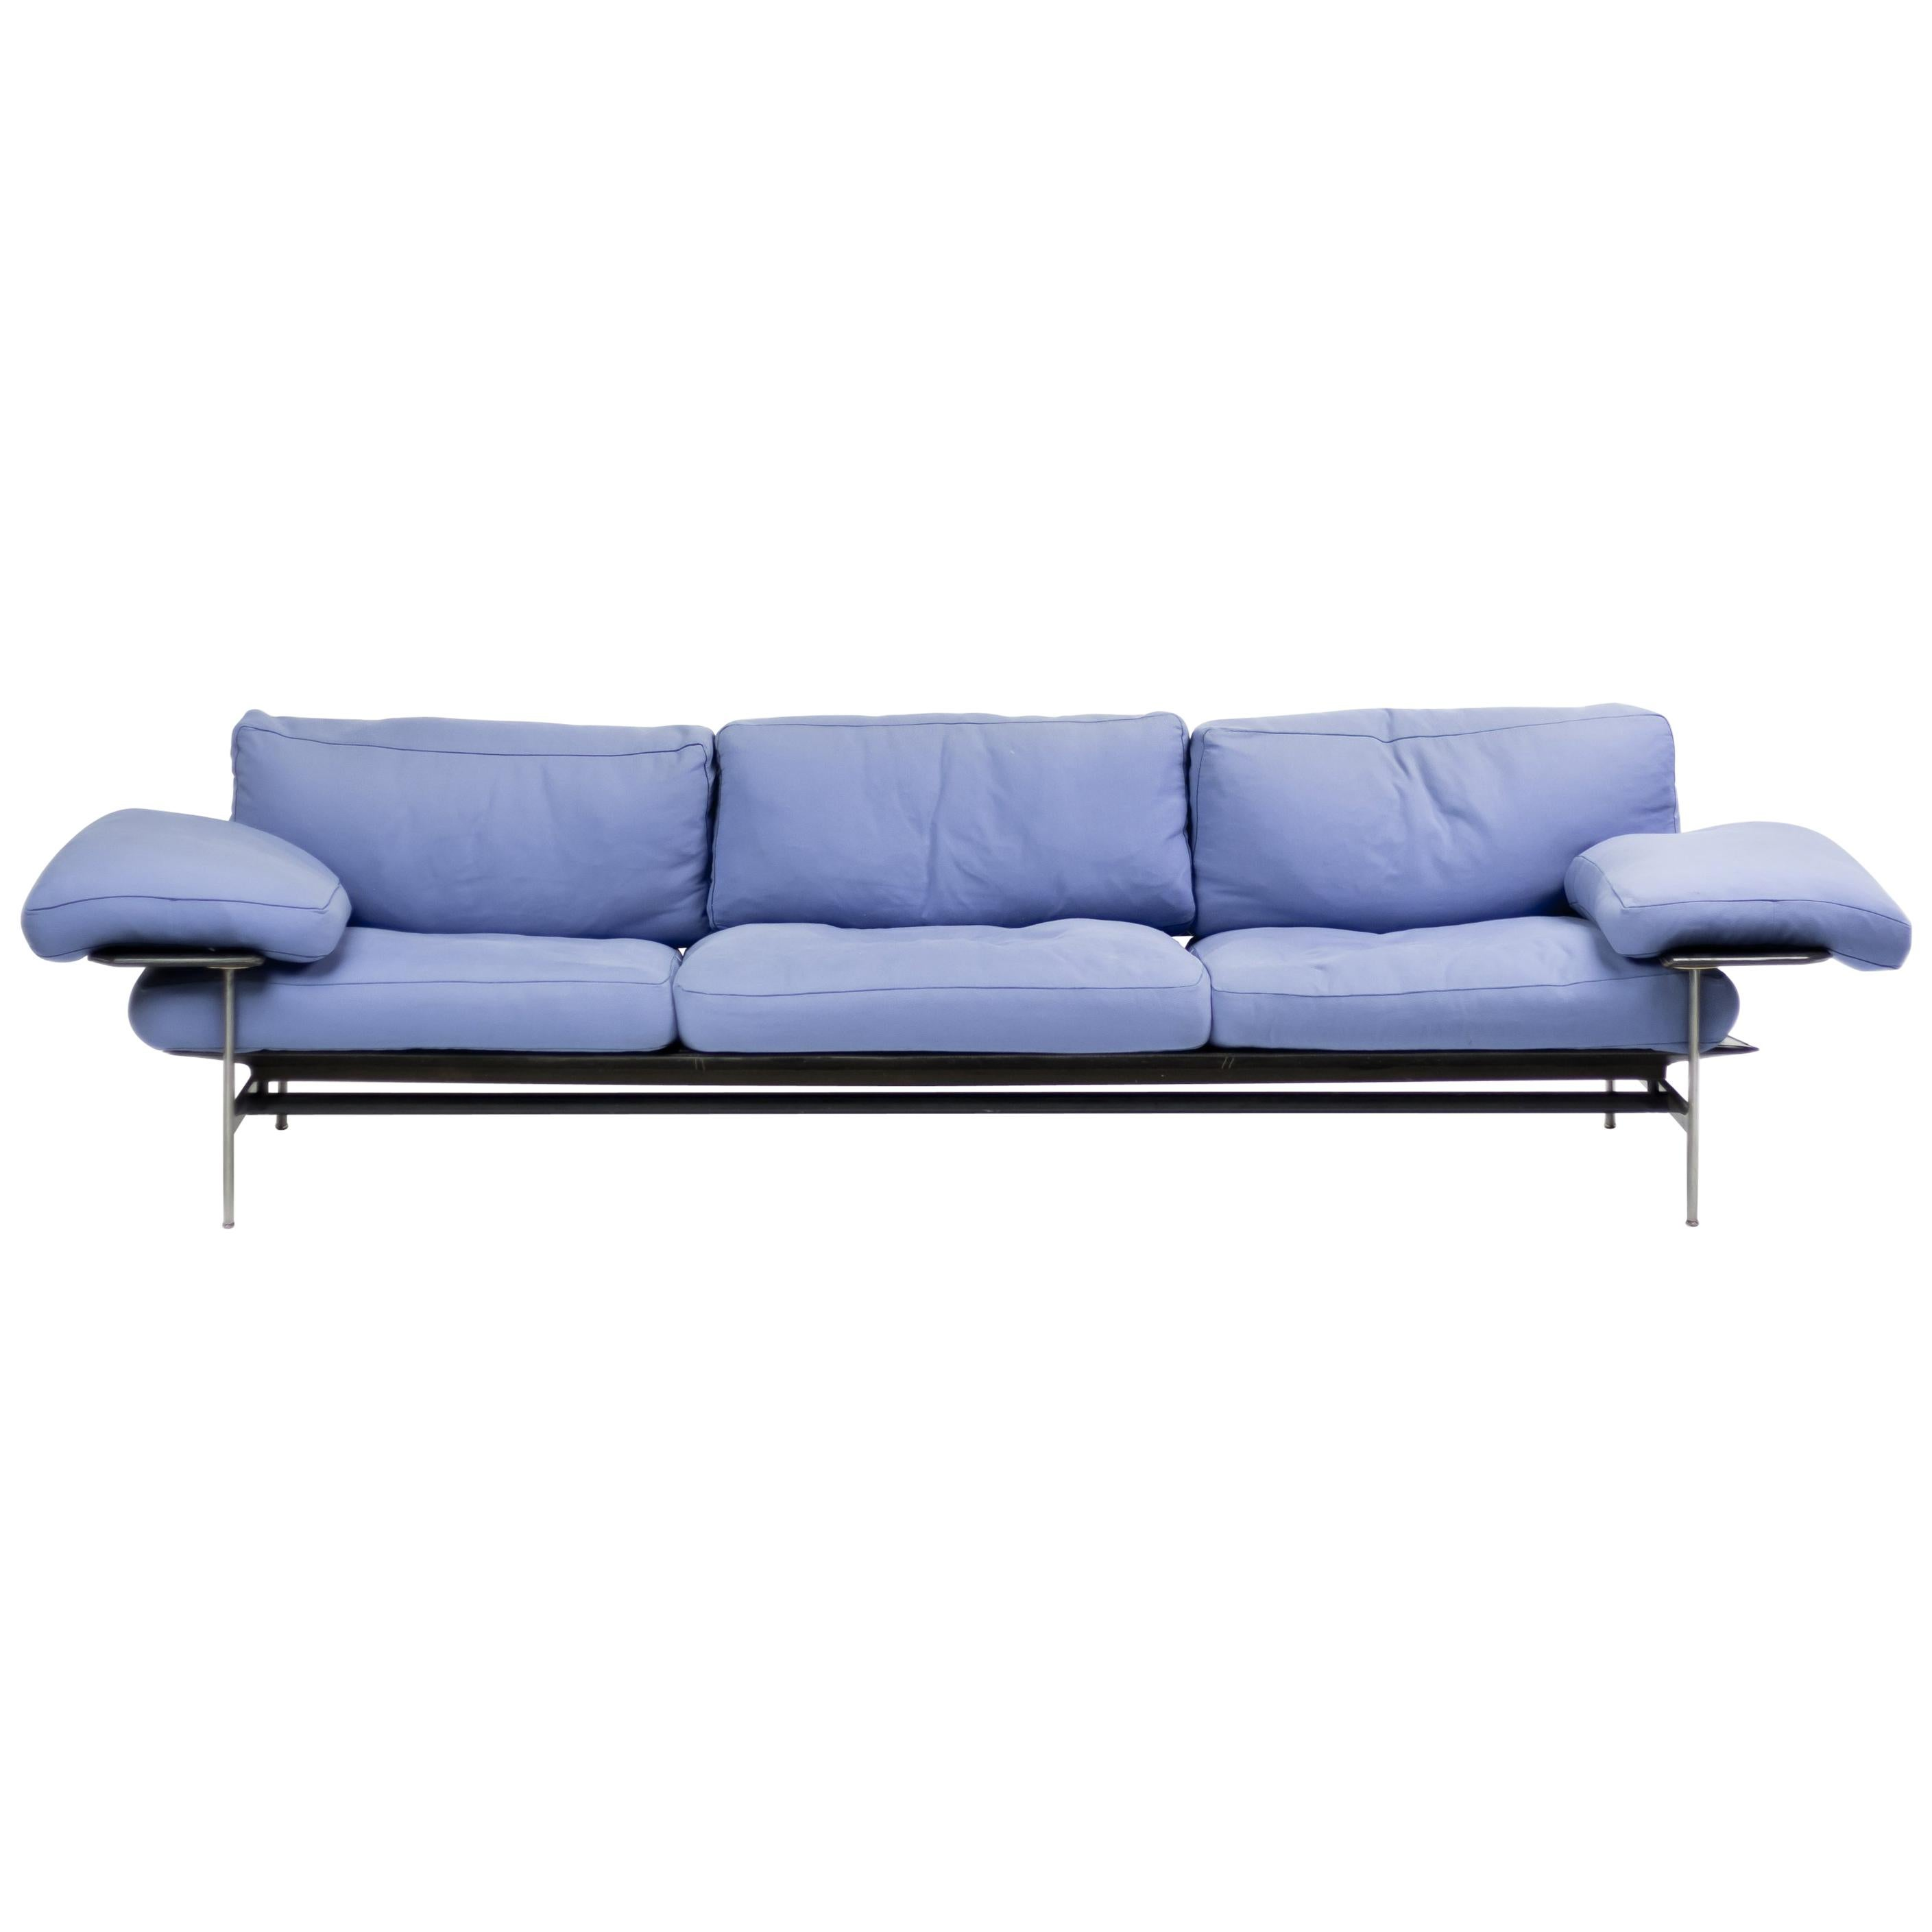 Antonio Citterio City Sofa Antonio Citterio Sofas 17 For Sale At 1stdibs